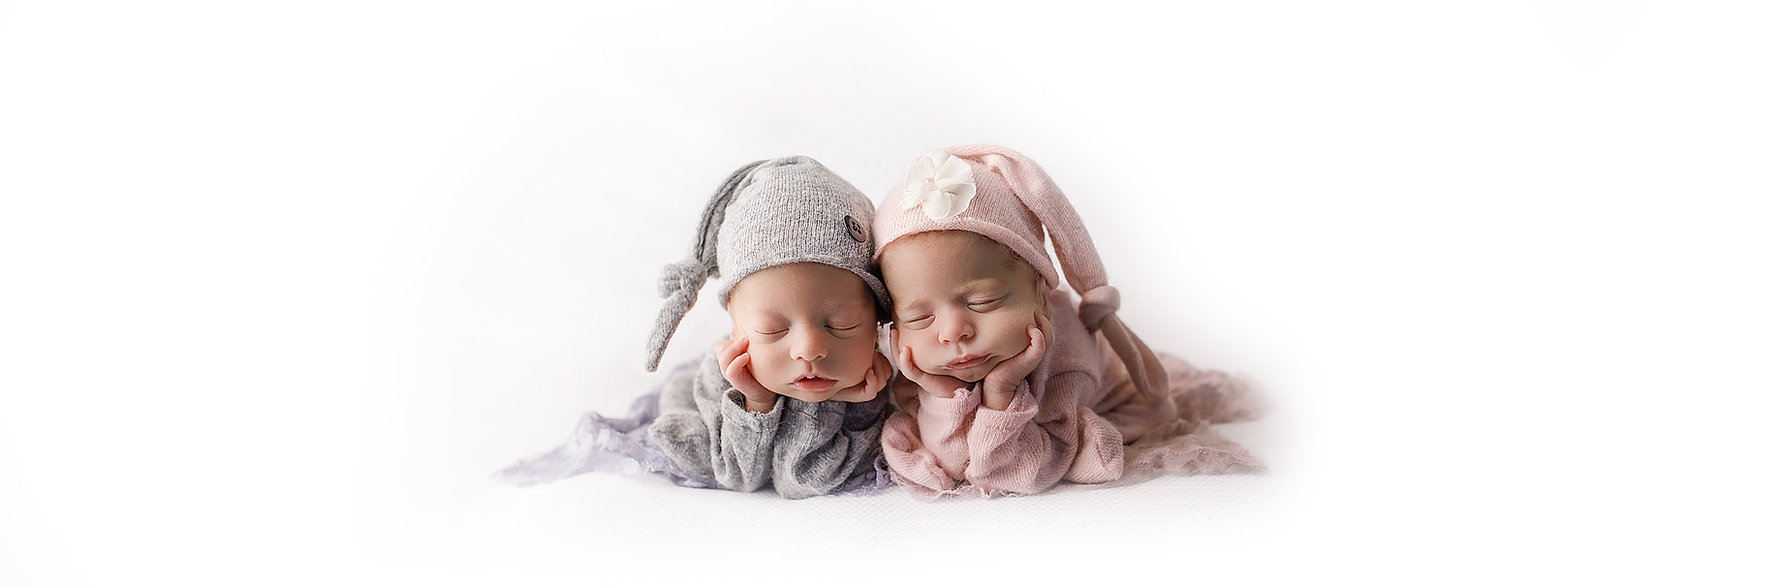 Newborn twin phoography